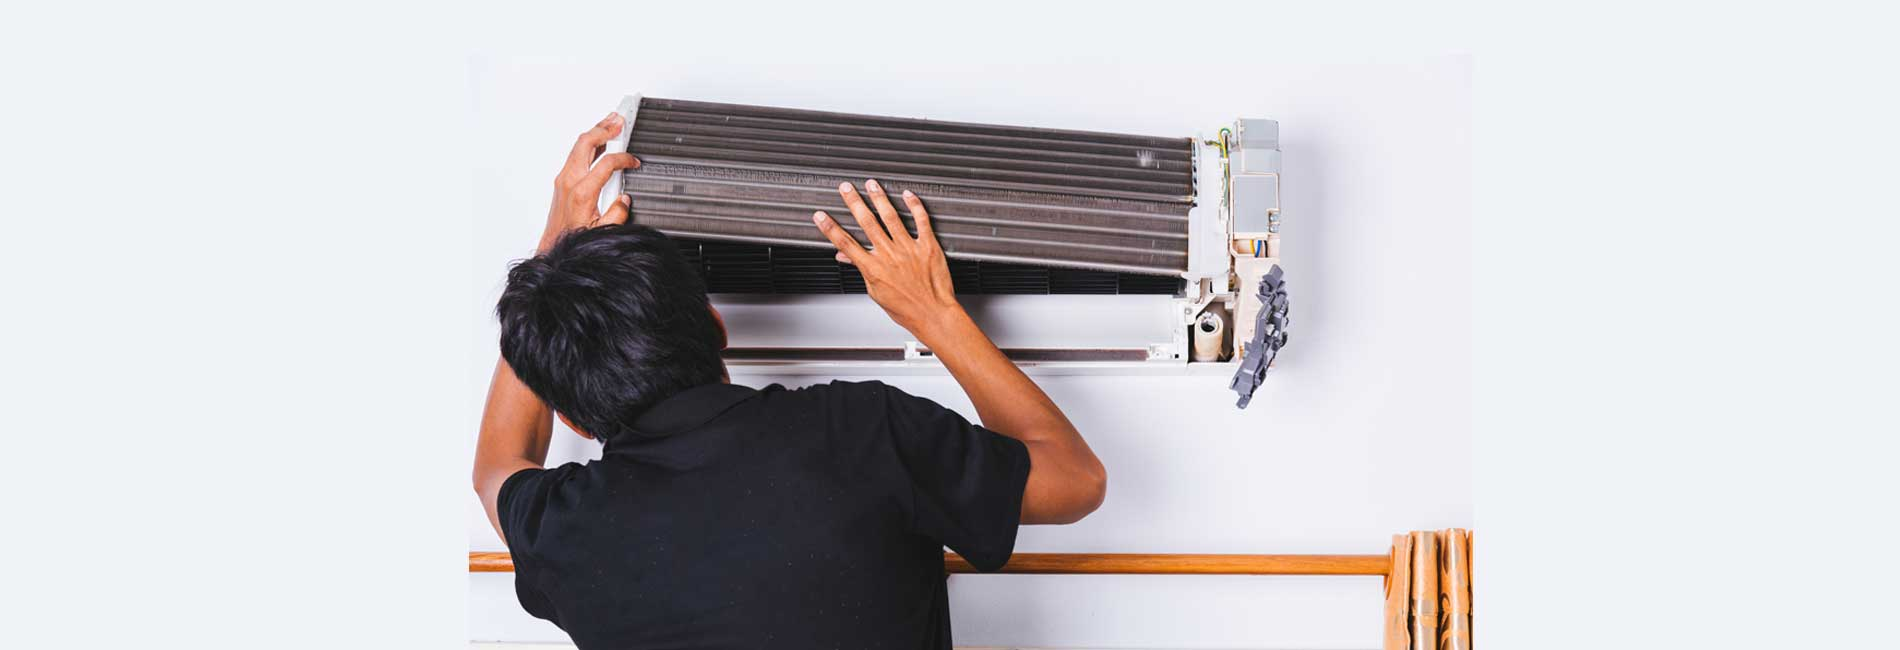 Panasonic AC Uninstallation and Installation in Gowrivakkam